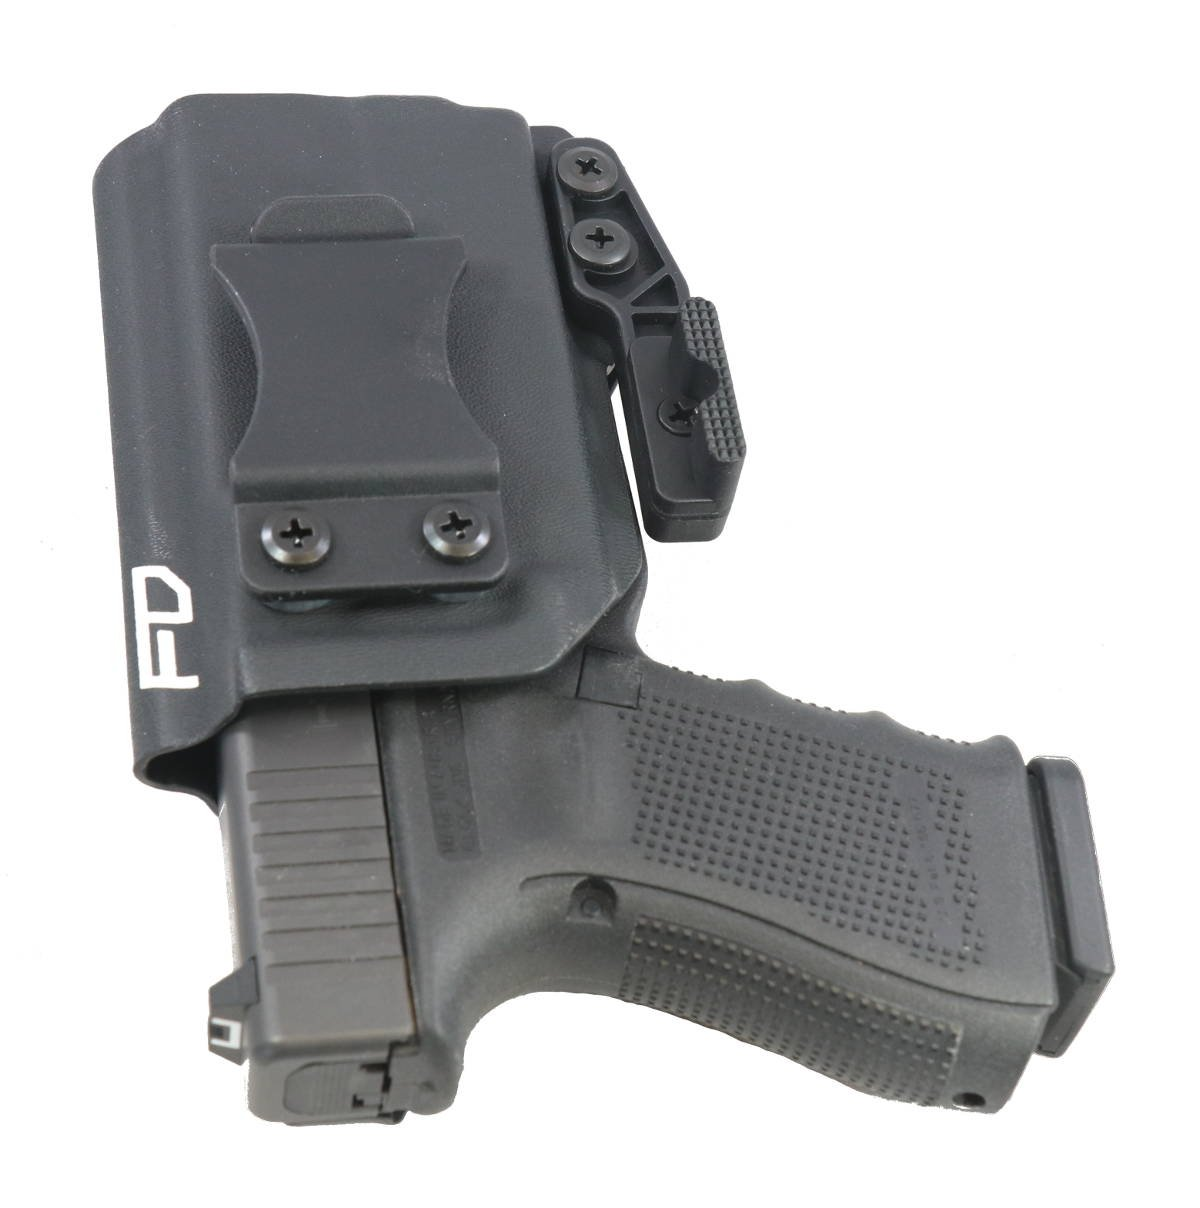 Amazon.com : Fierce Defender IWB Kydex Holster Glock 19 23 32 w/Olight PL-Mini Valkyrie The Paladin Series -Made in USA- GEN 5 Compatible : Sports & ...